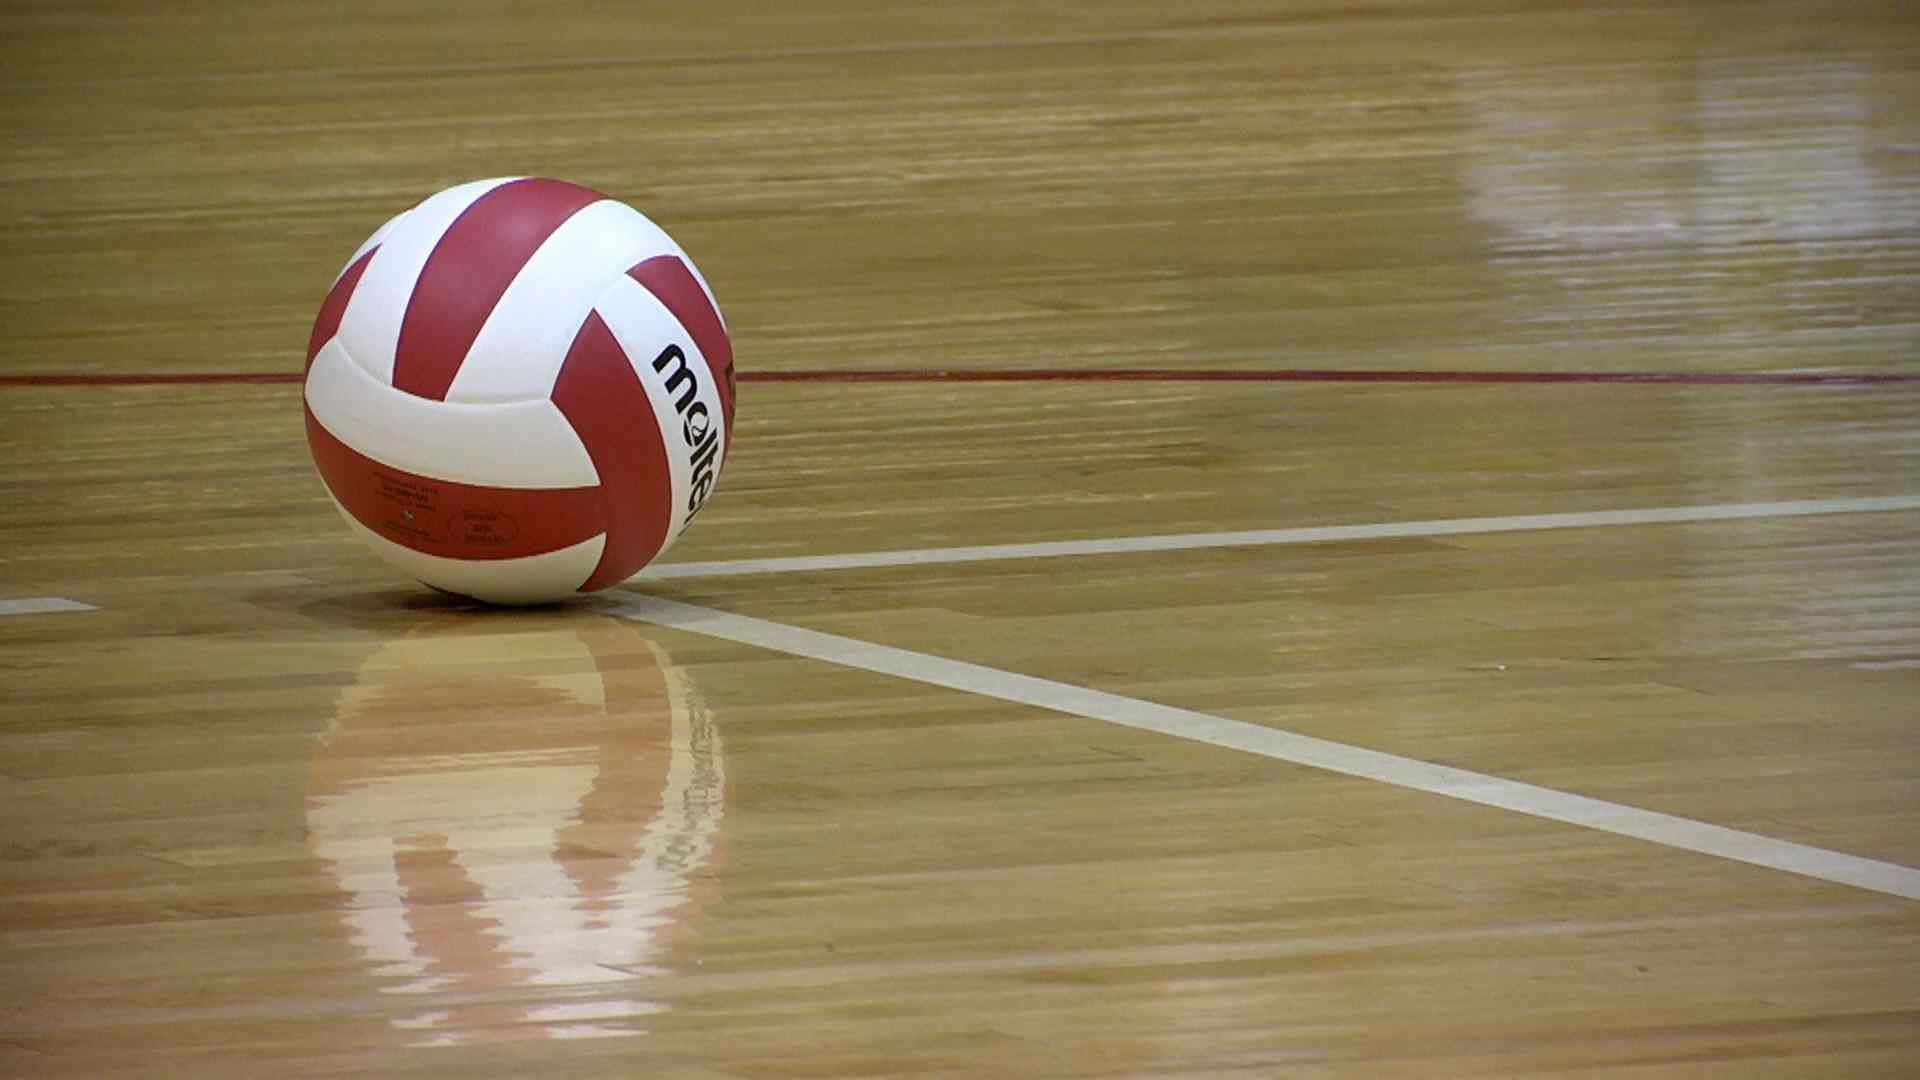 Volleyball Wallpaper 1920 1080 Volleyball Wallpaper 37 Wallpapers Adorable Wallpapers Volleyball Wallpaper Volleyball Pictures Wallpaper